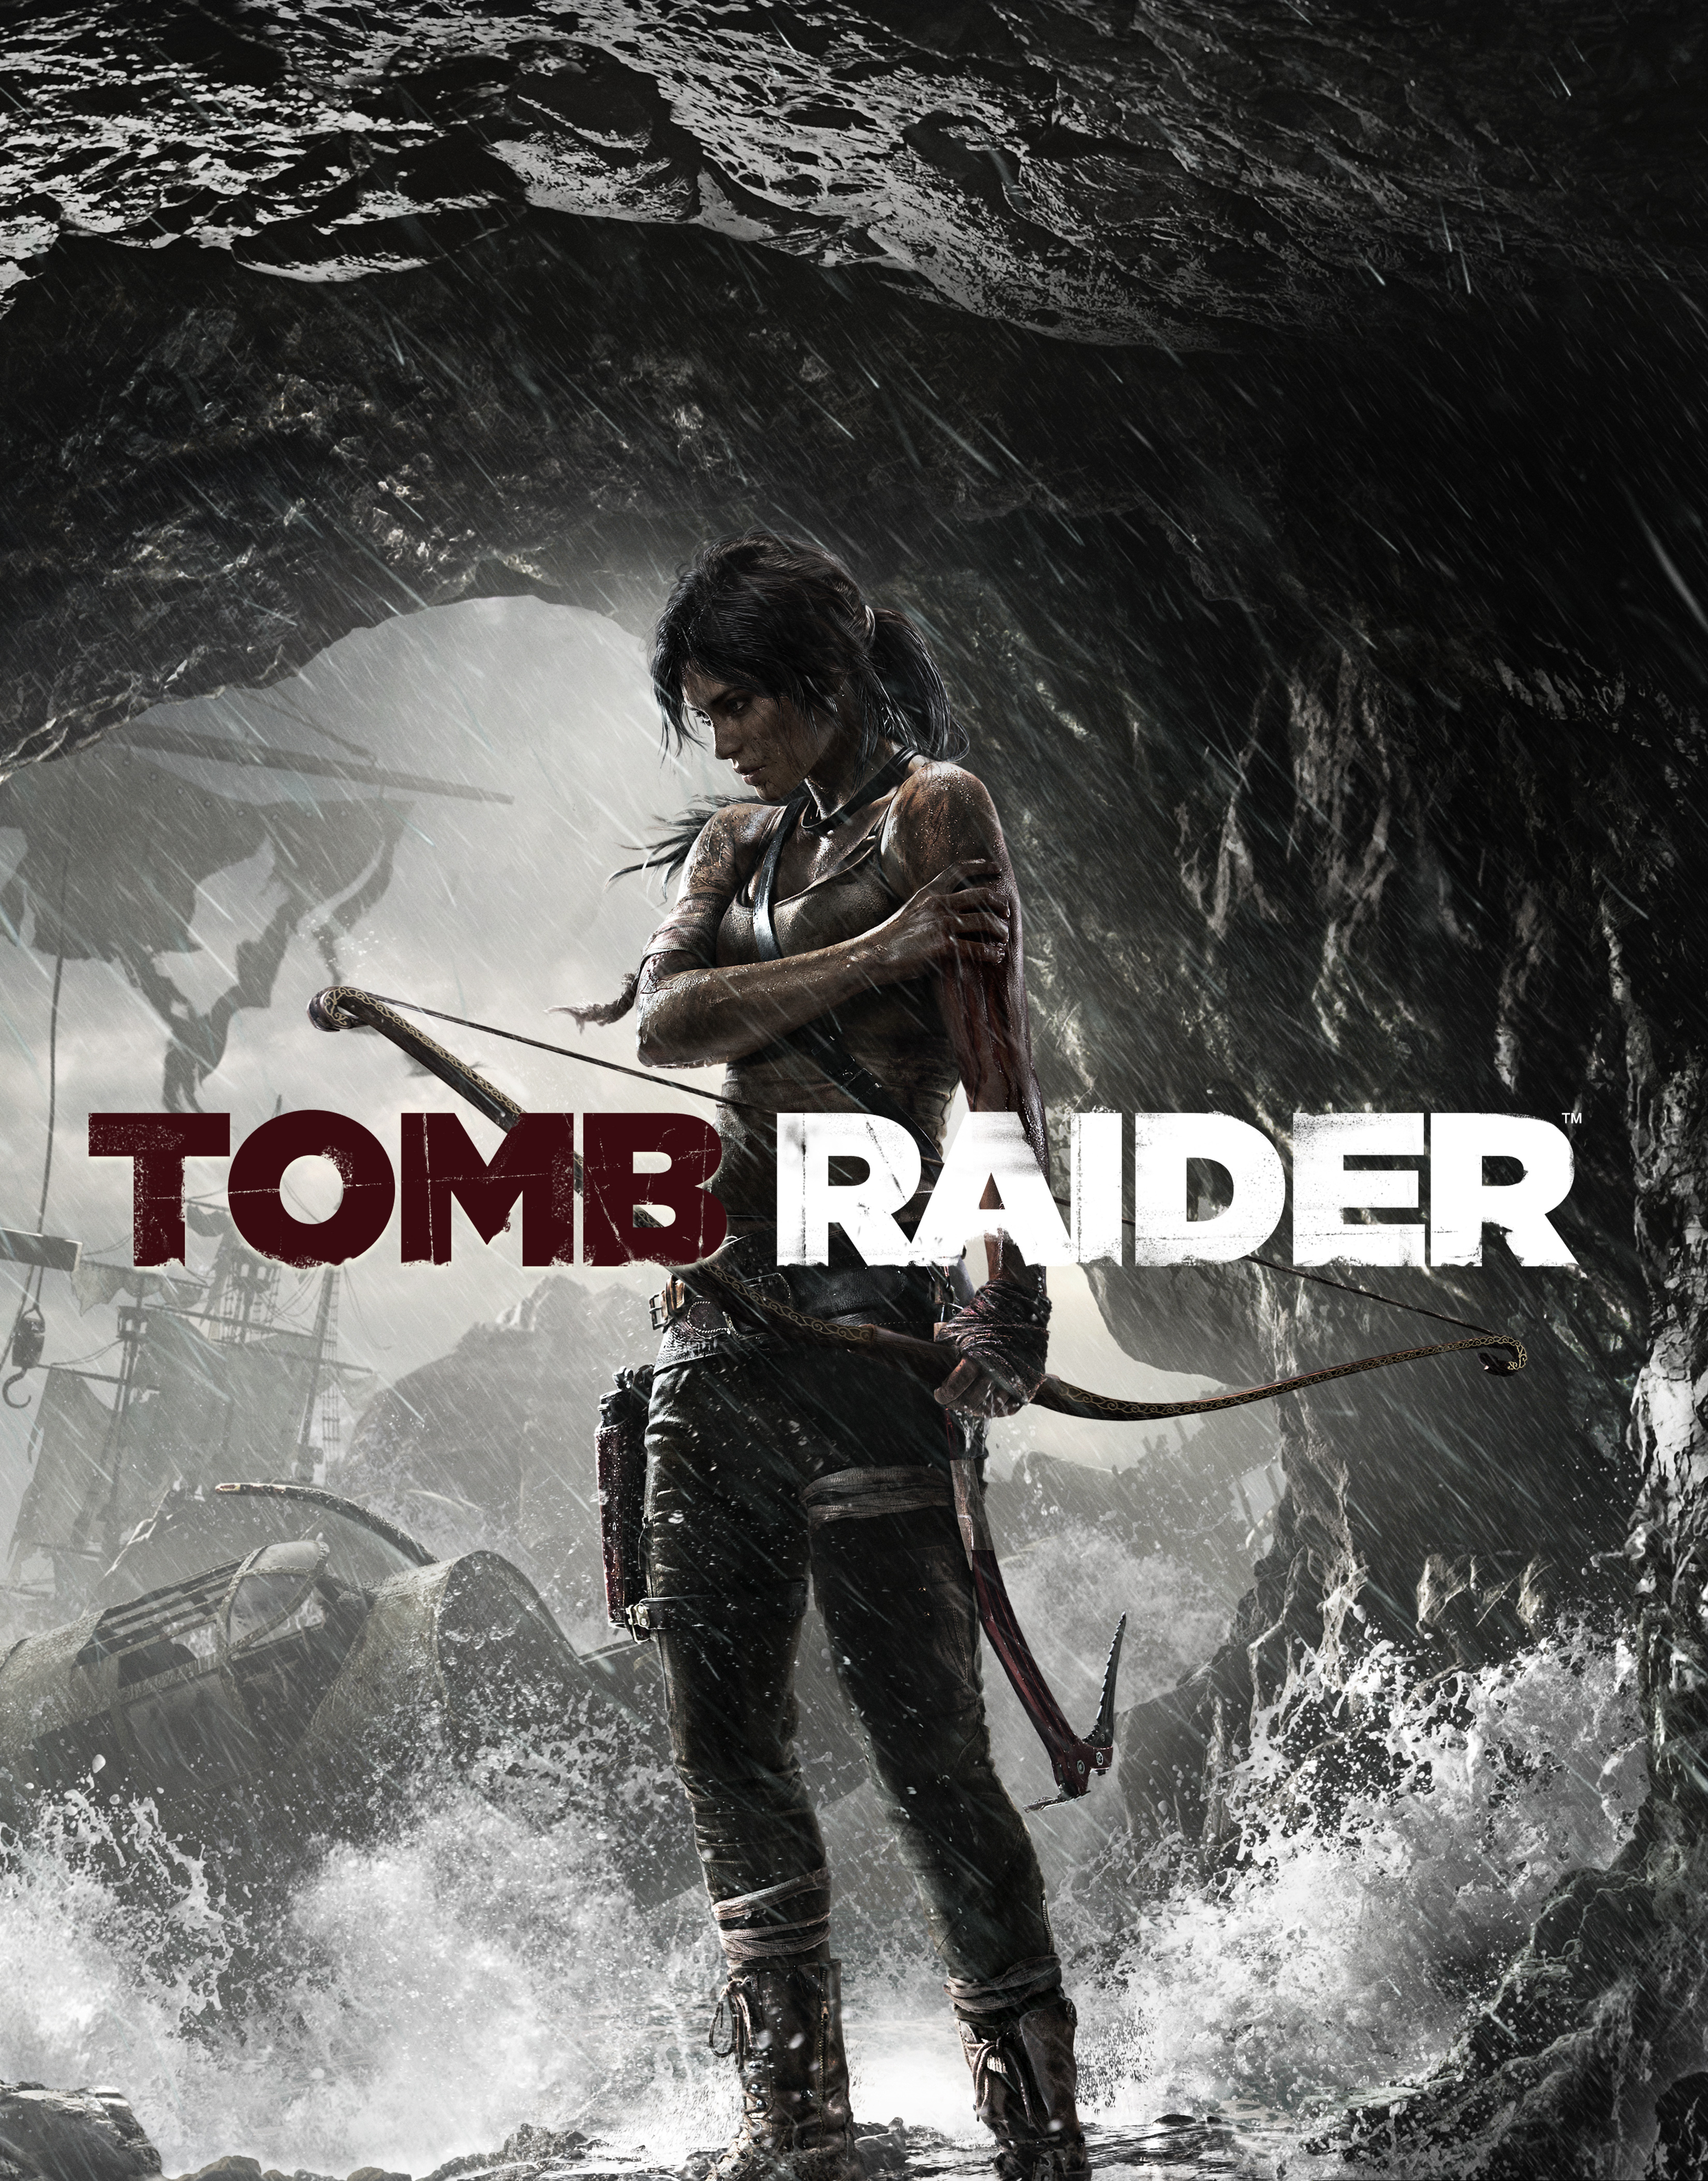 tomb raider 2013 picture gallery section page two lara